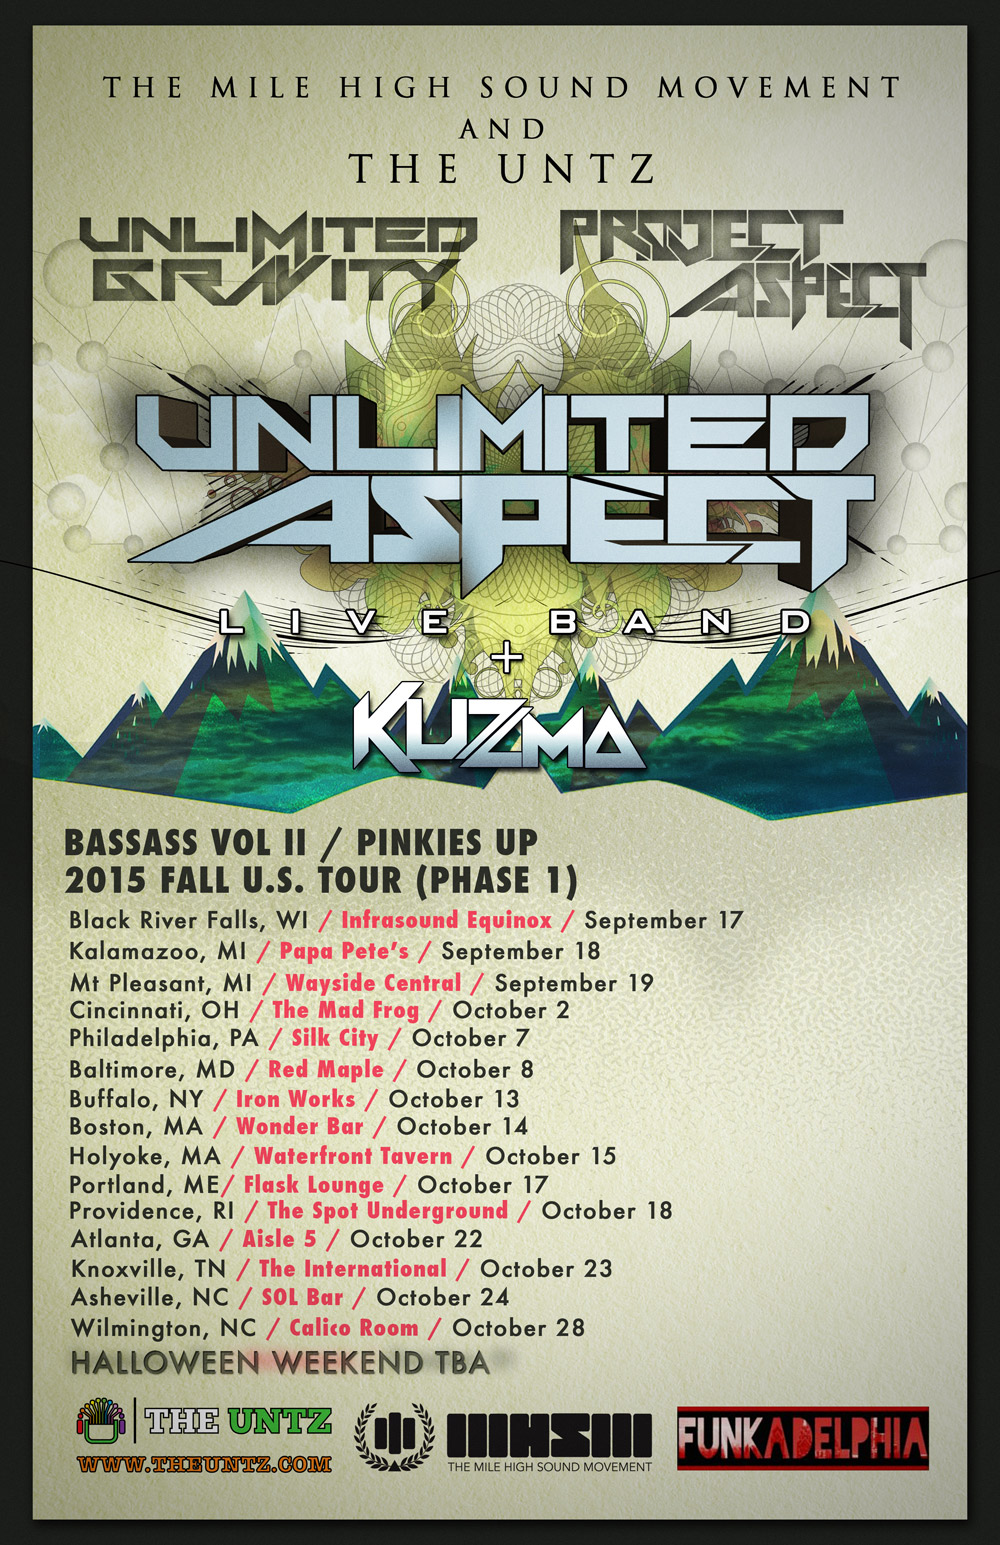 Unlimited Aspect live band tour